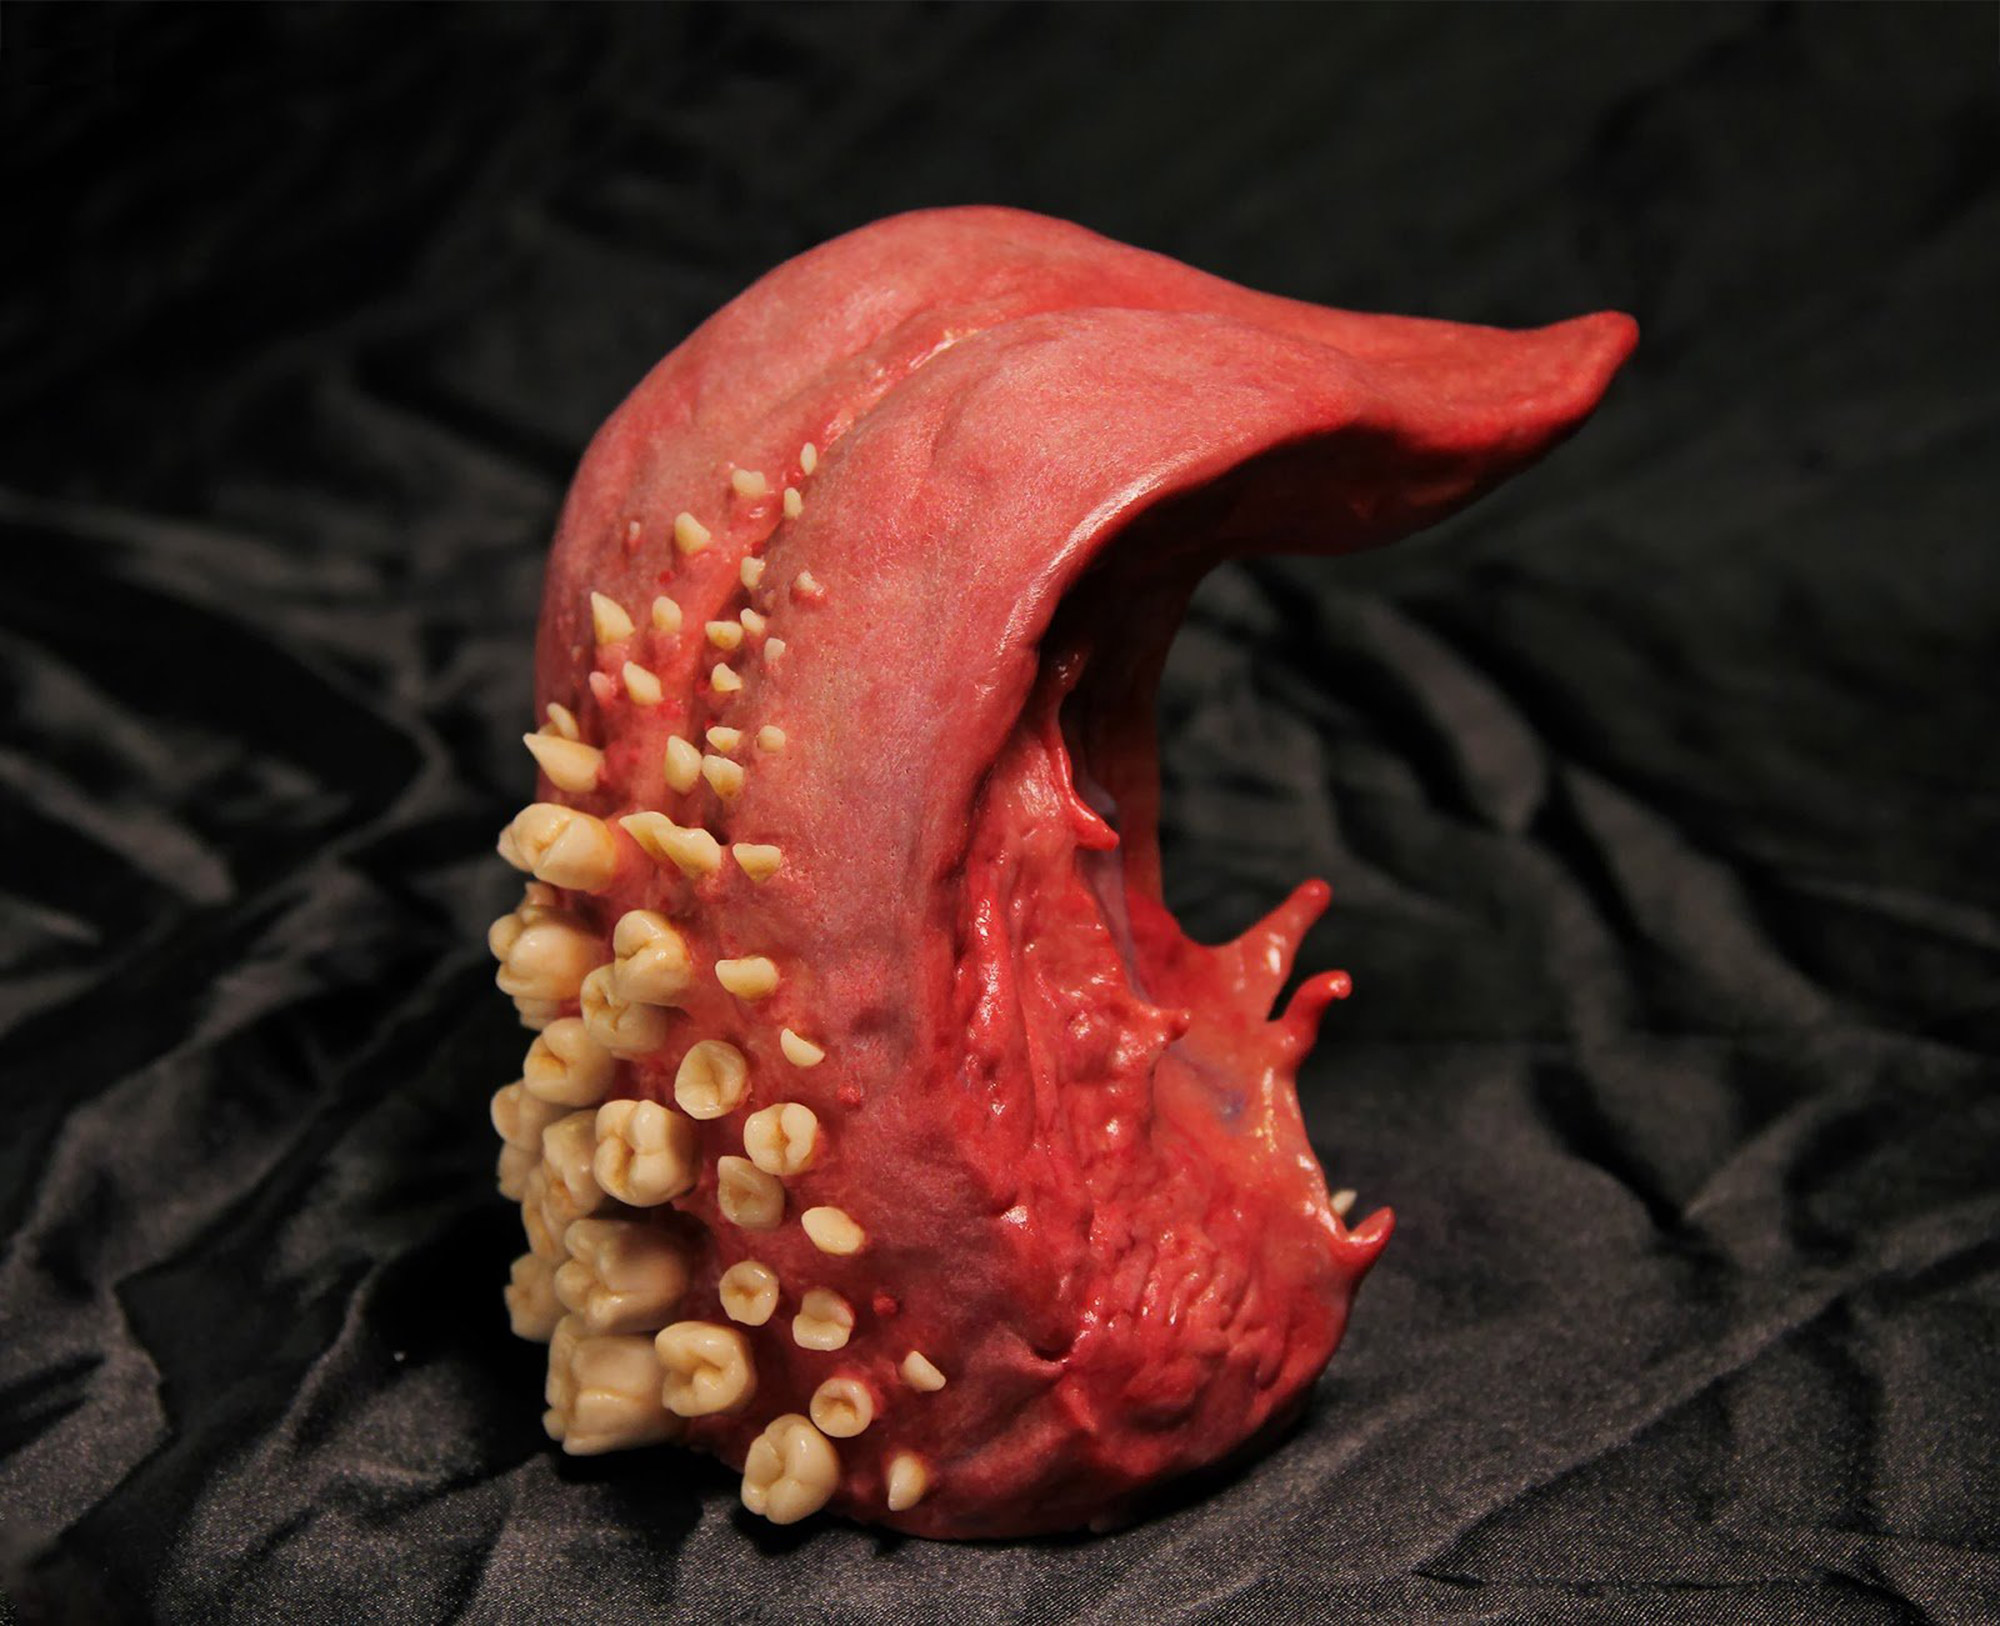 Fleshlettes: Cutely Grotesque Sculptures by Jonathan Payne